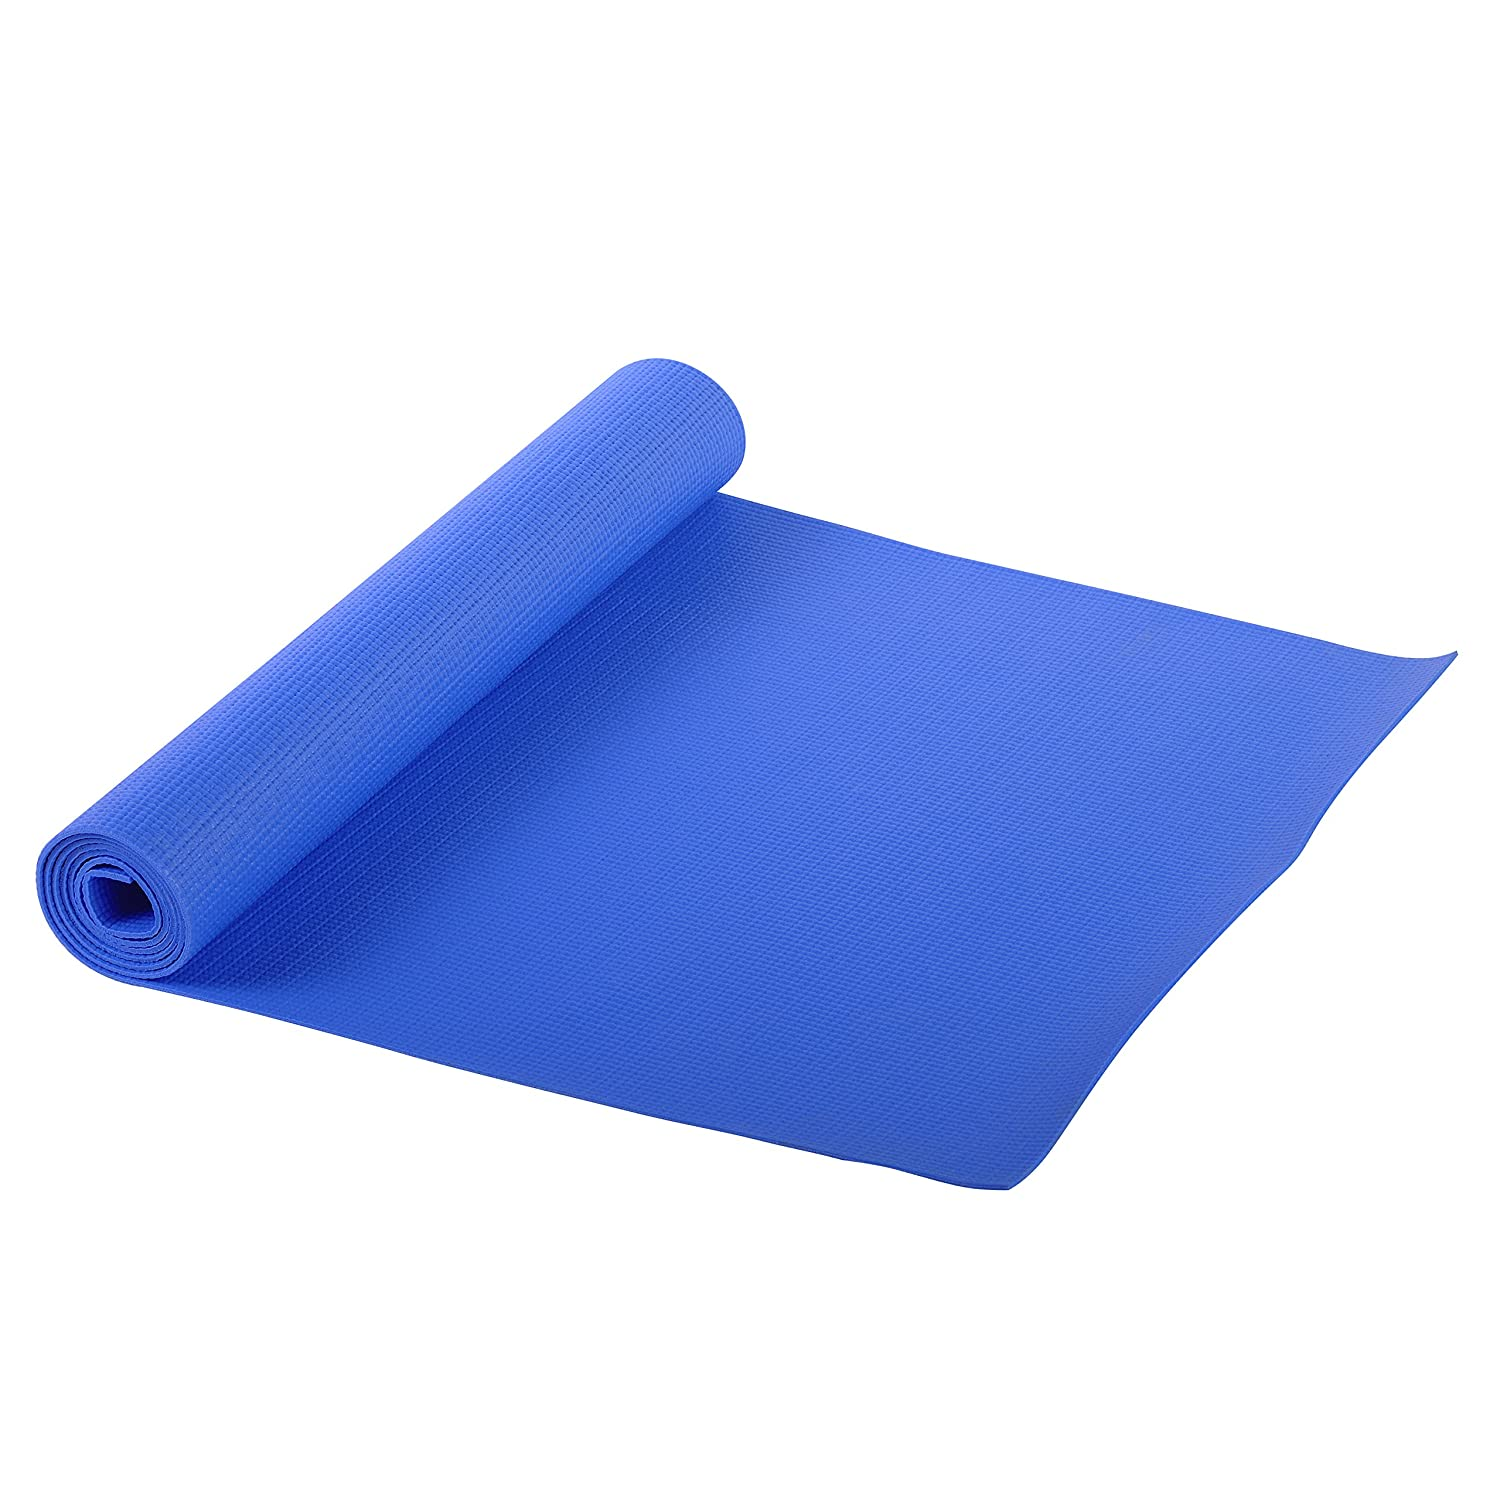 Amazon.com : Sunny Health and Fitness Yoga Mat (Blue) : Exercise Mat ...